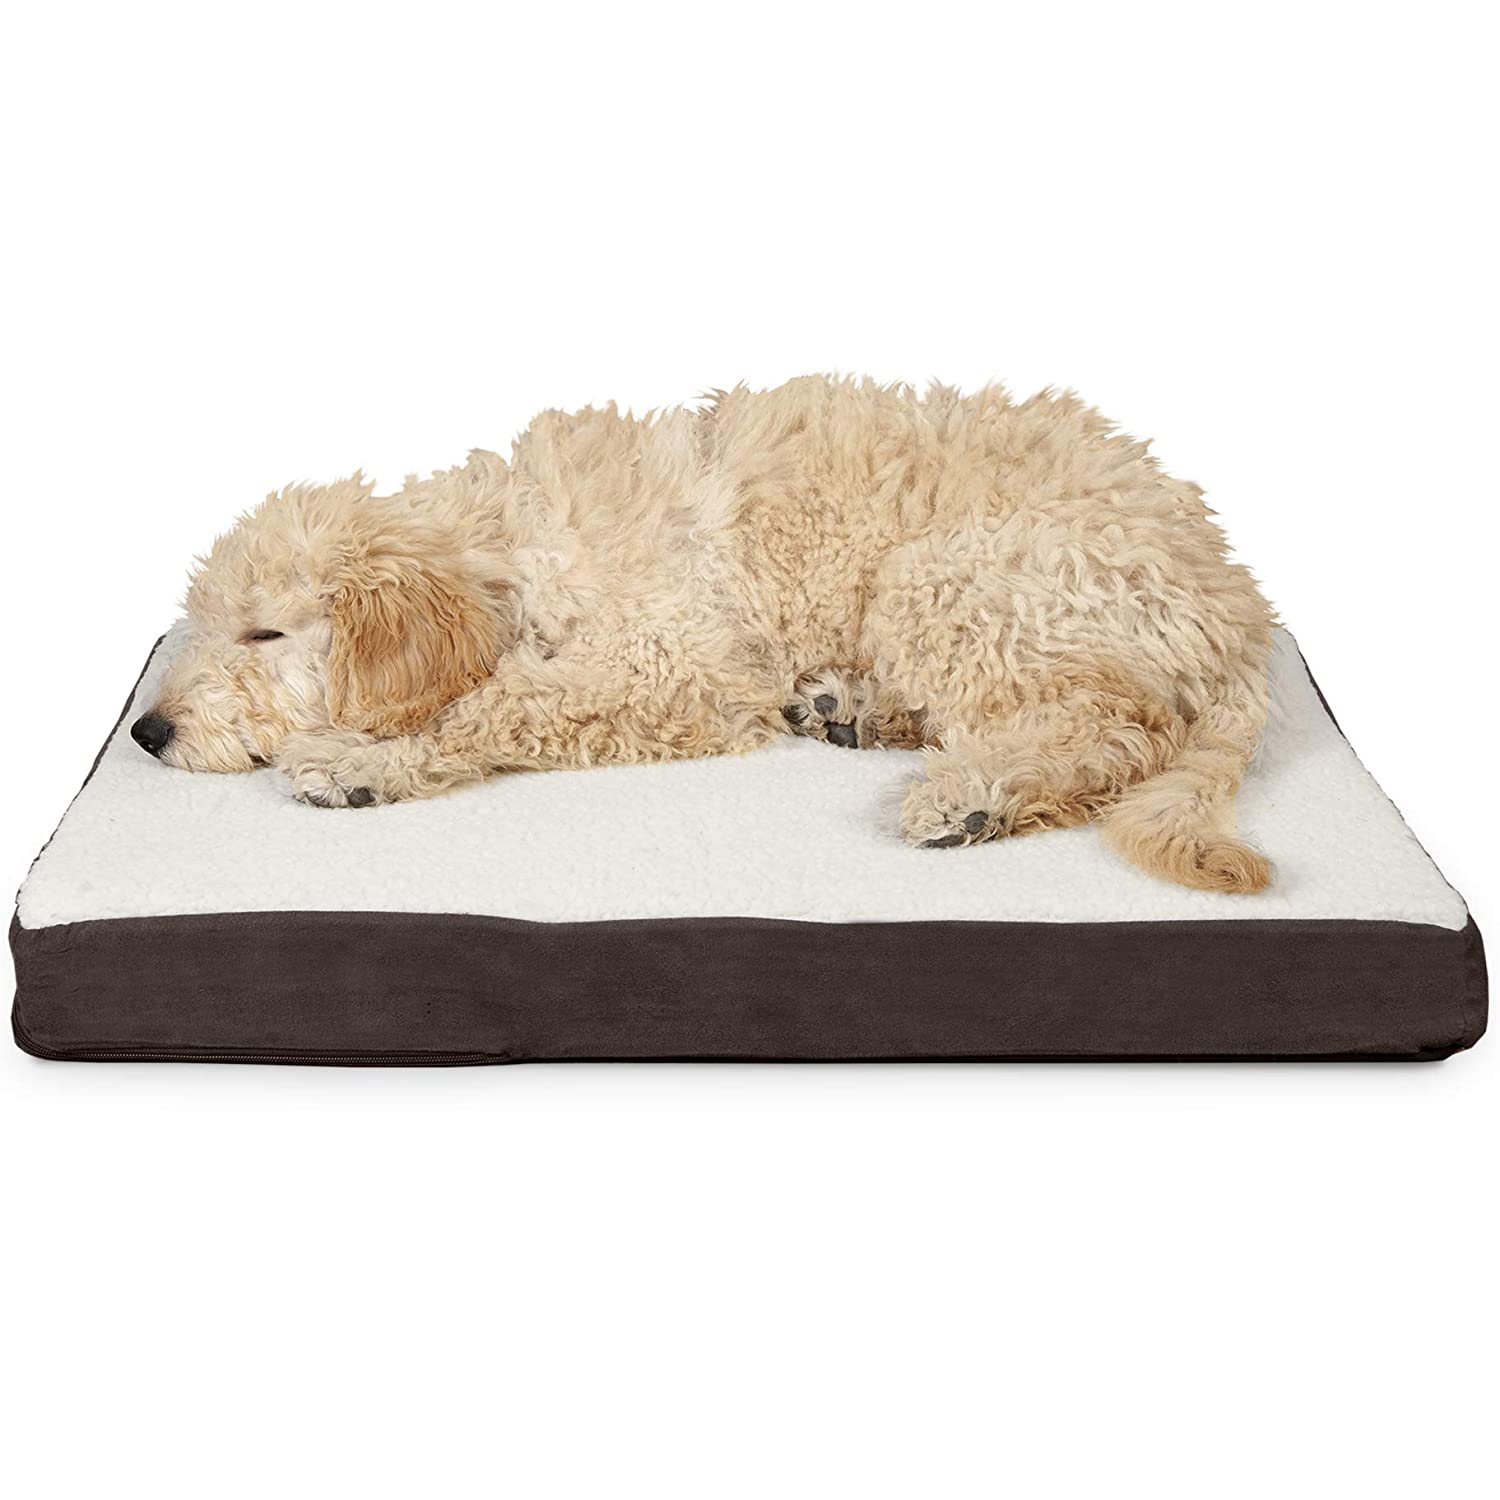 FurHaven Pet Dog Bed   Deluxe Orthopedic Sherpa & Suede Pet Bed Mattress for Dogs & Cats, Espresso, Medium